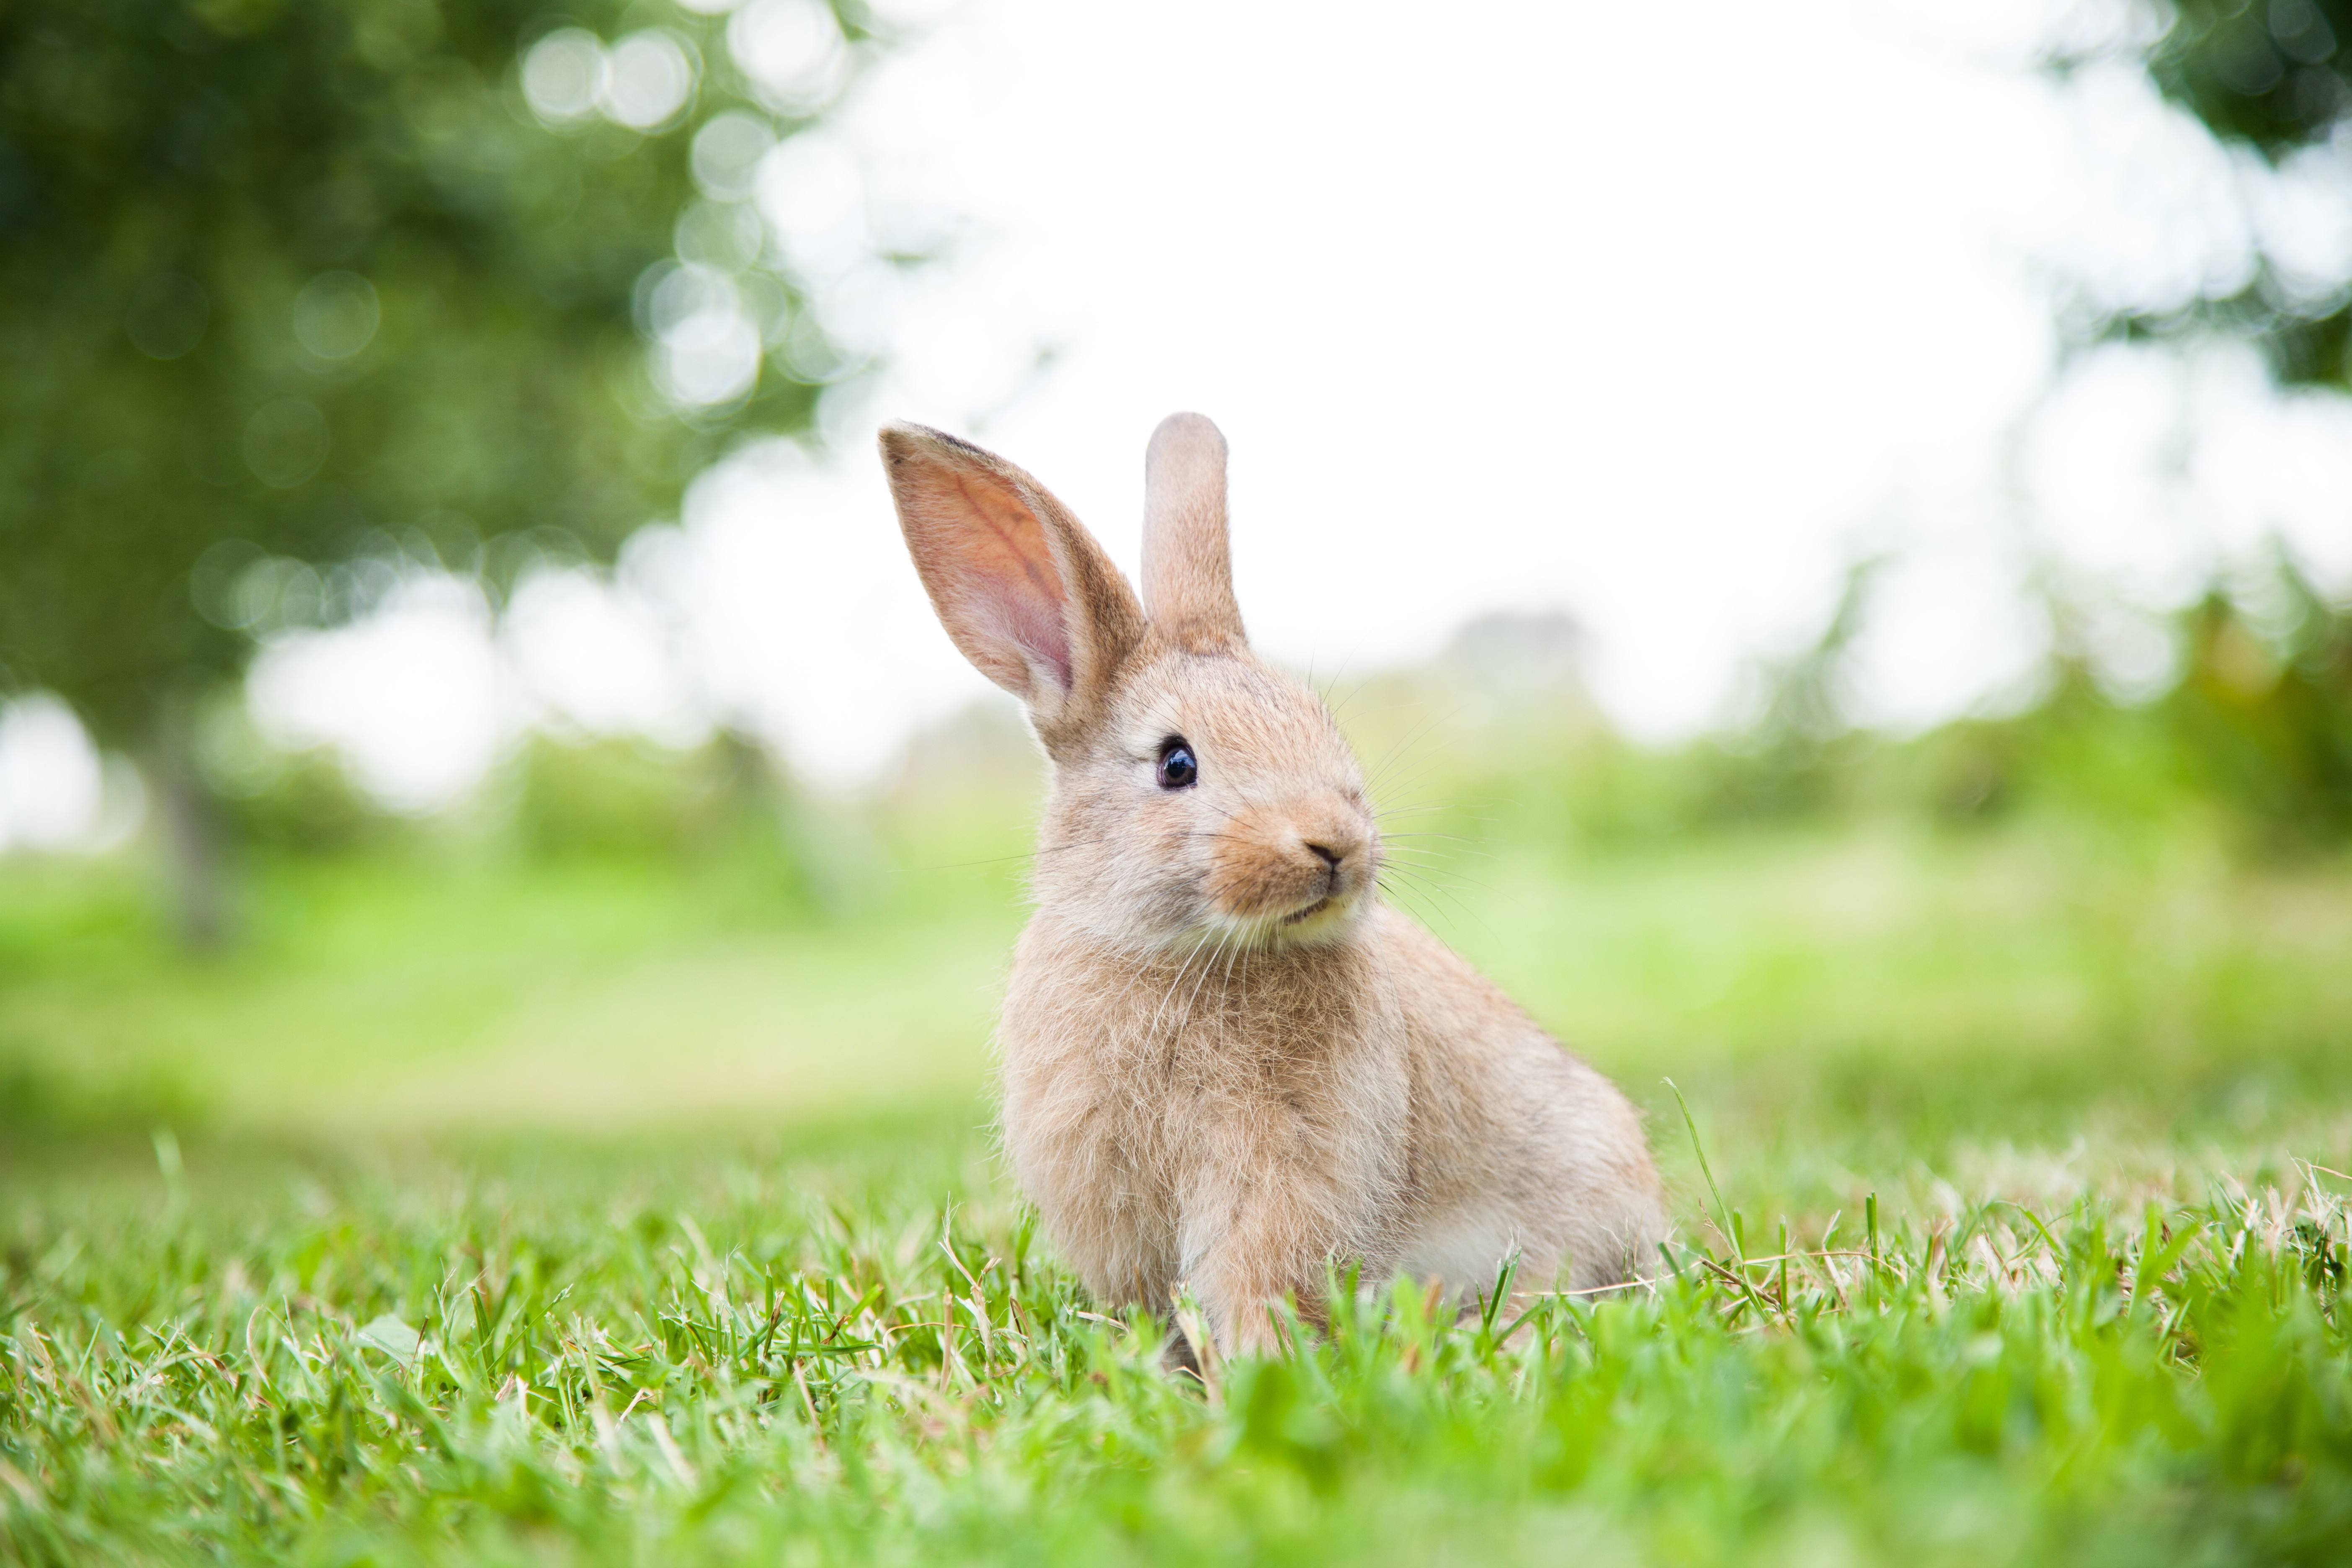 Snuggle up with some fluffy bunnies at the Nook on ...